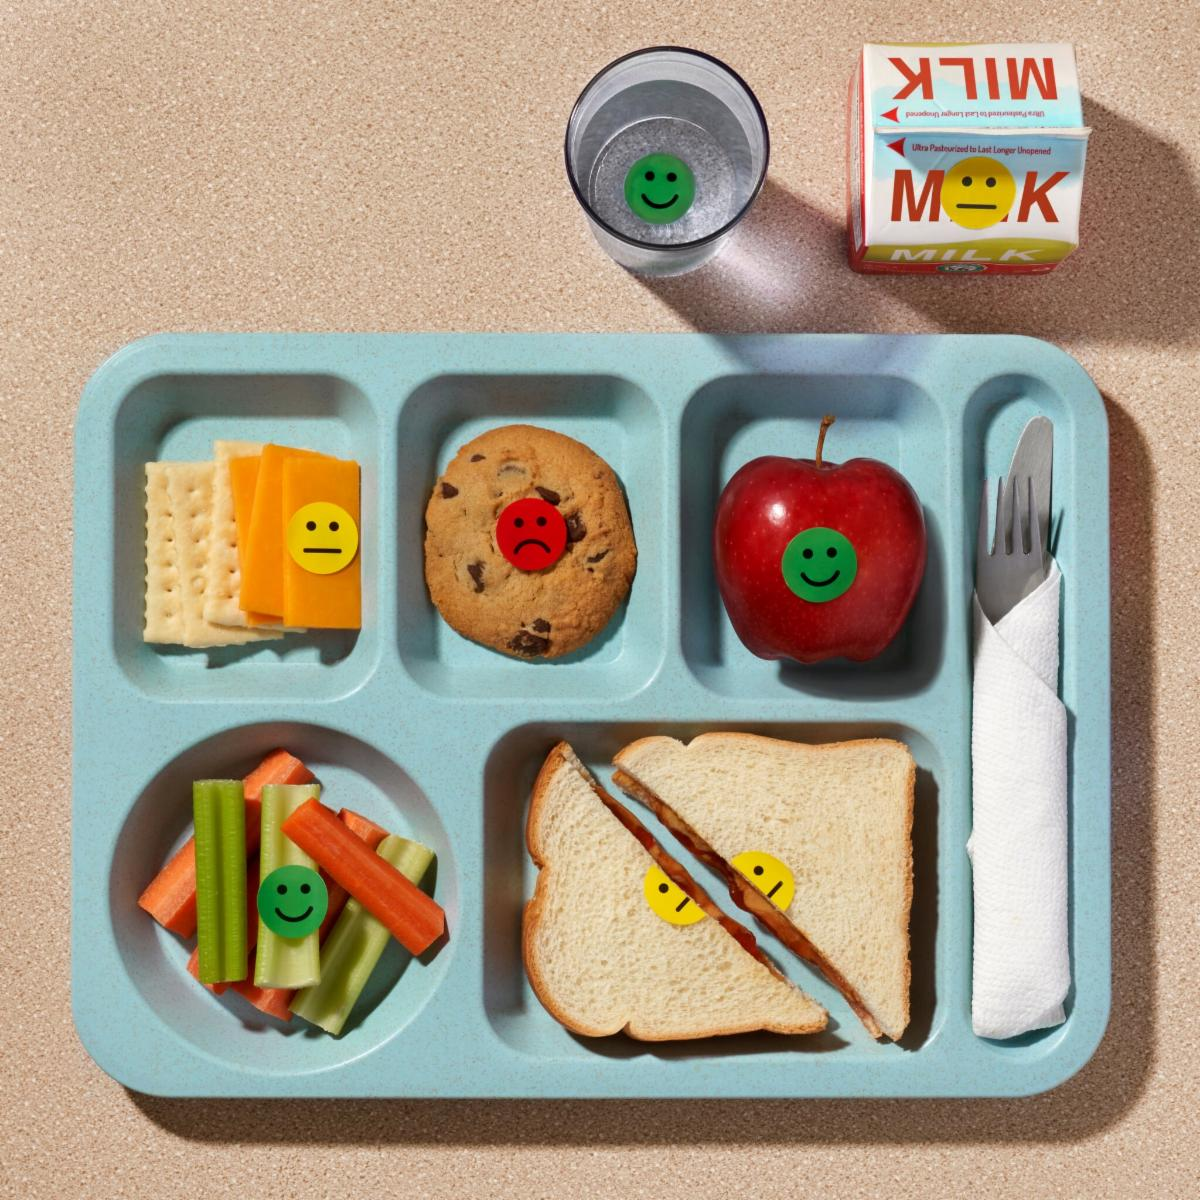 Photo of school cafeteria tray